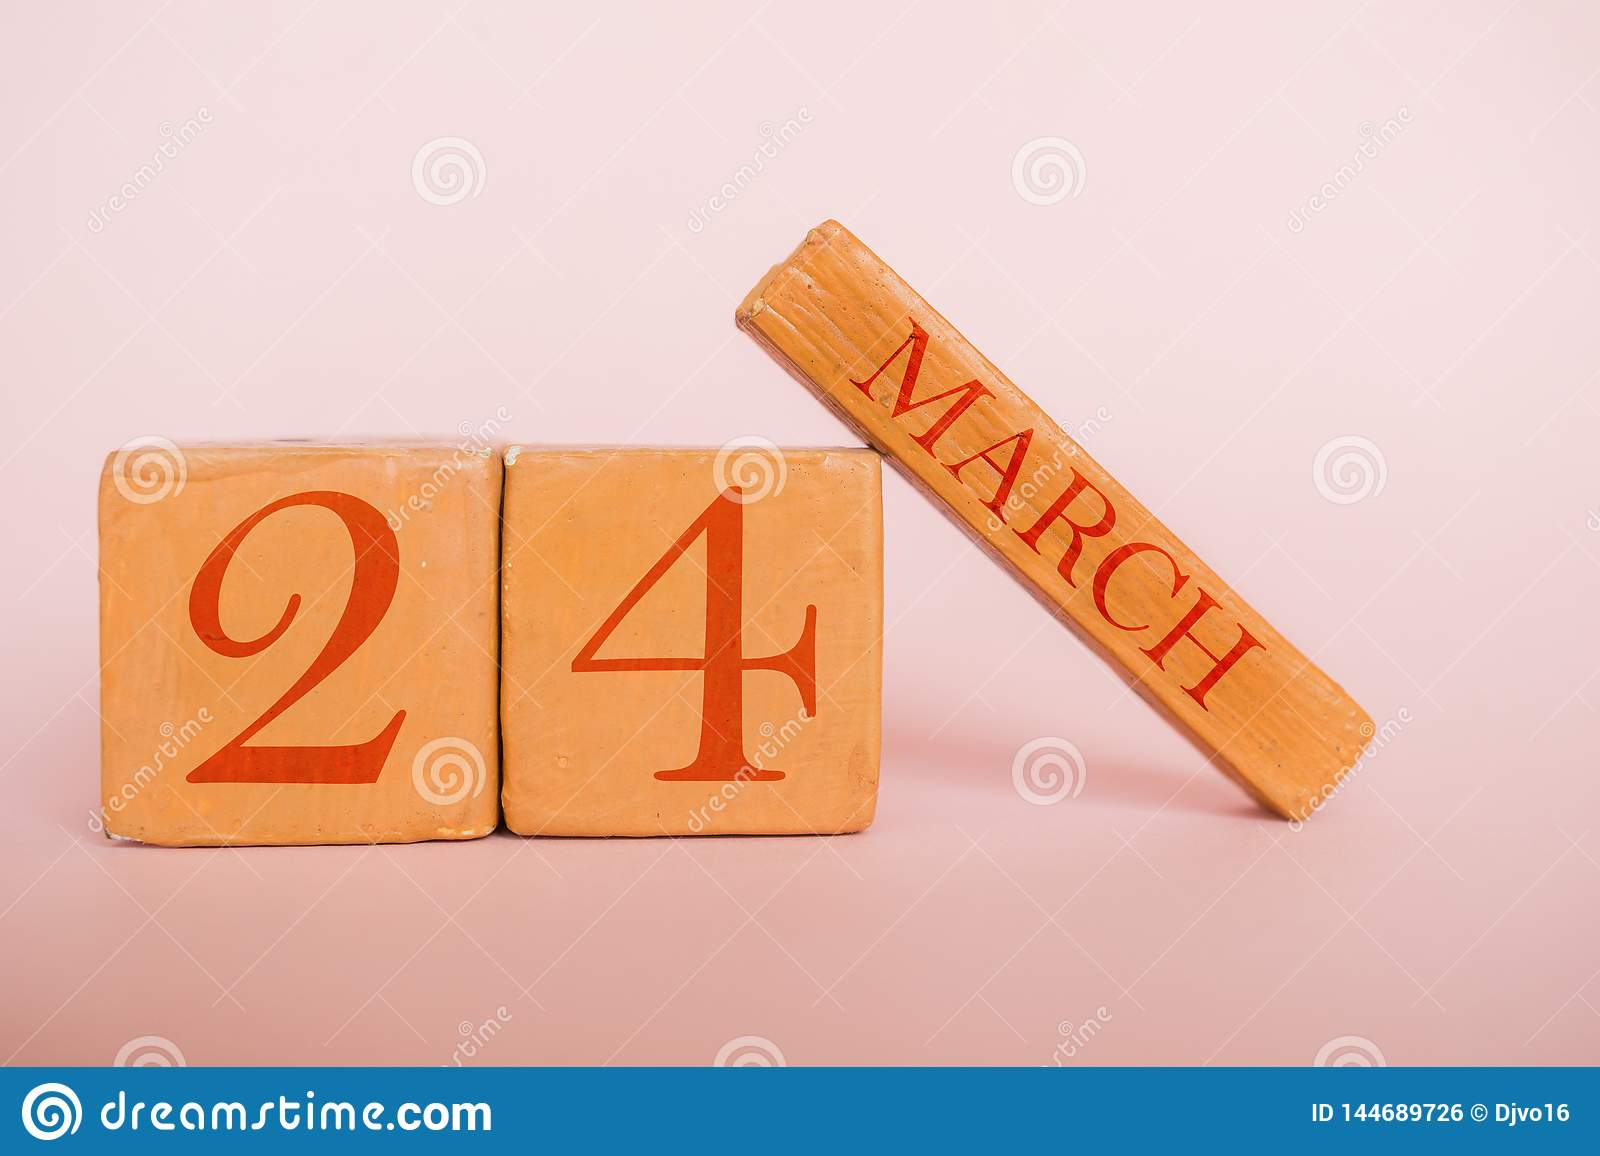 march 24th. Day 24 of month, handmade wood calendar  on modern color background. spring month, day of the year concept